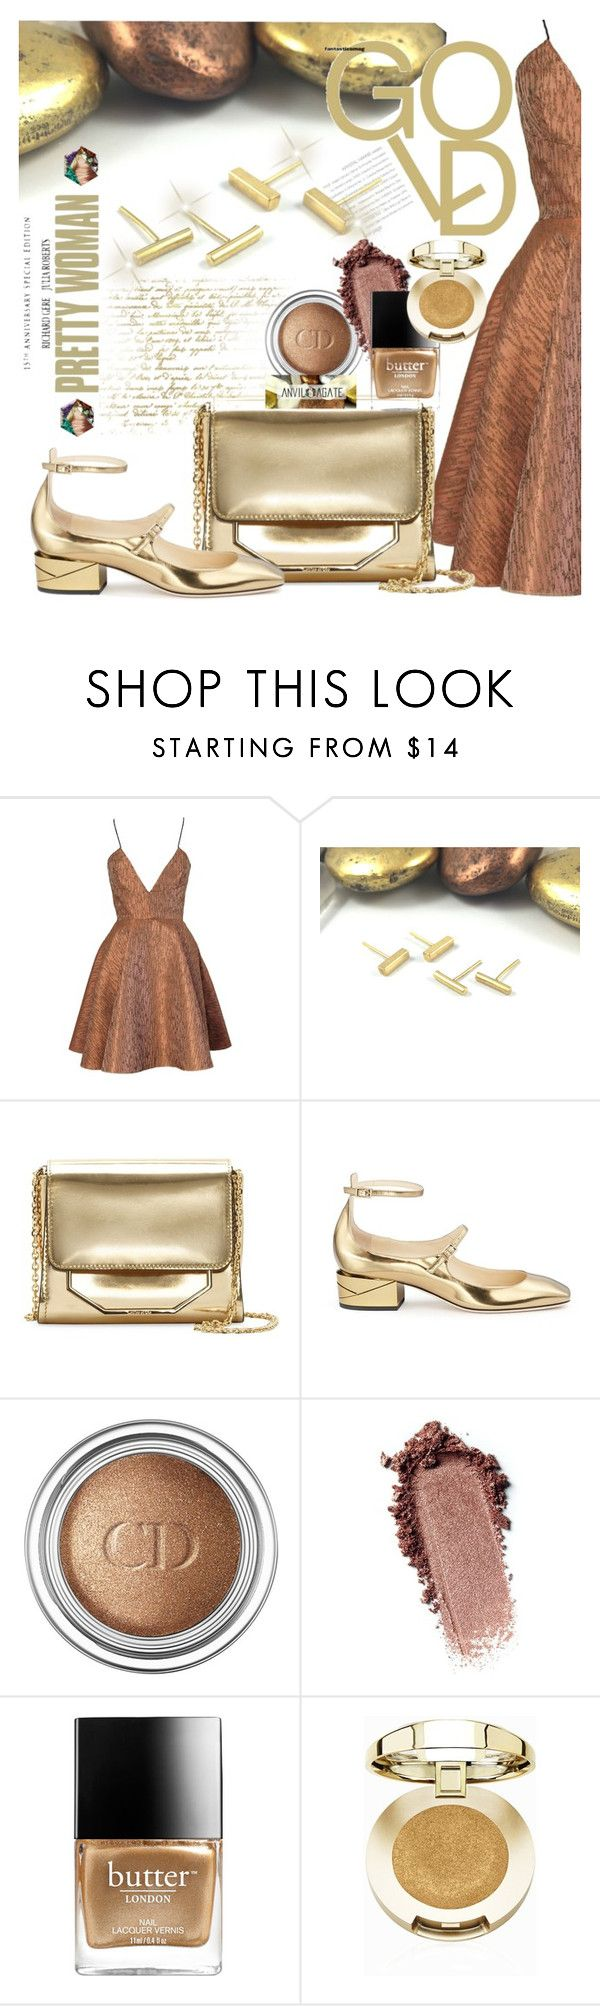 """""""ANVIL AGATE -Double Piercing Earrings"""" by selmir ❤ liked on Polyvore featuring Joana Almagro, Louise et Cie, Jimmy Choo, Christian Dior, Butter London, Milani, jewelry, darkflorals and anvilagate"""